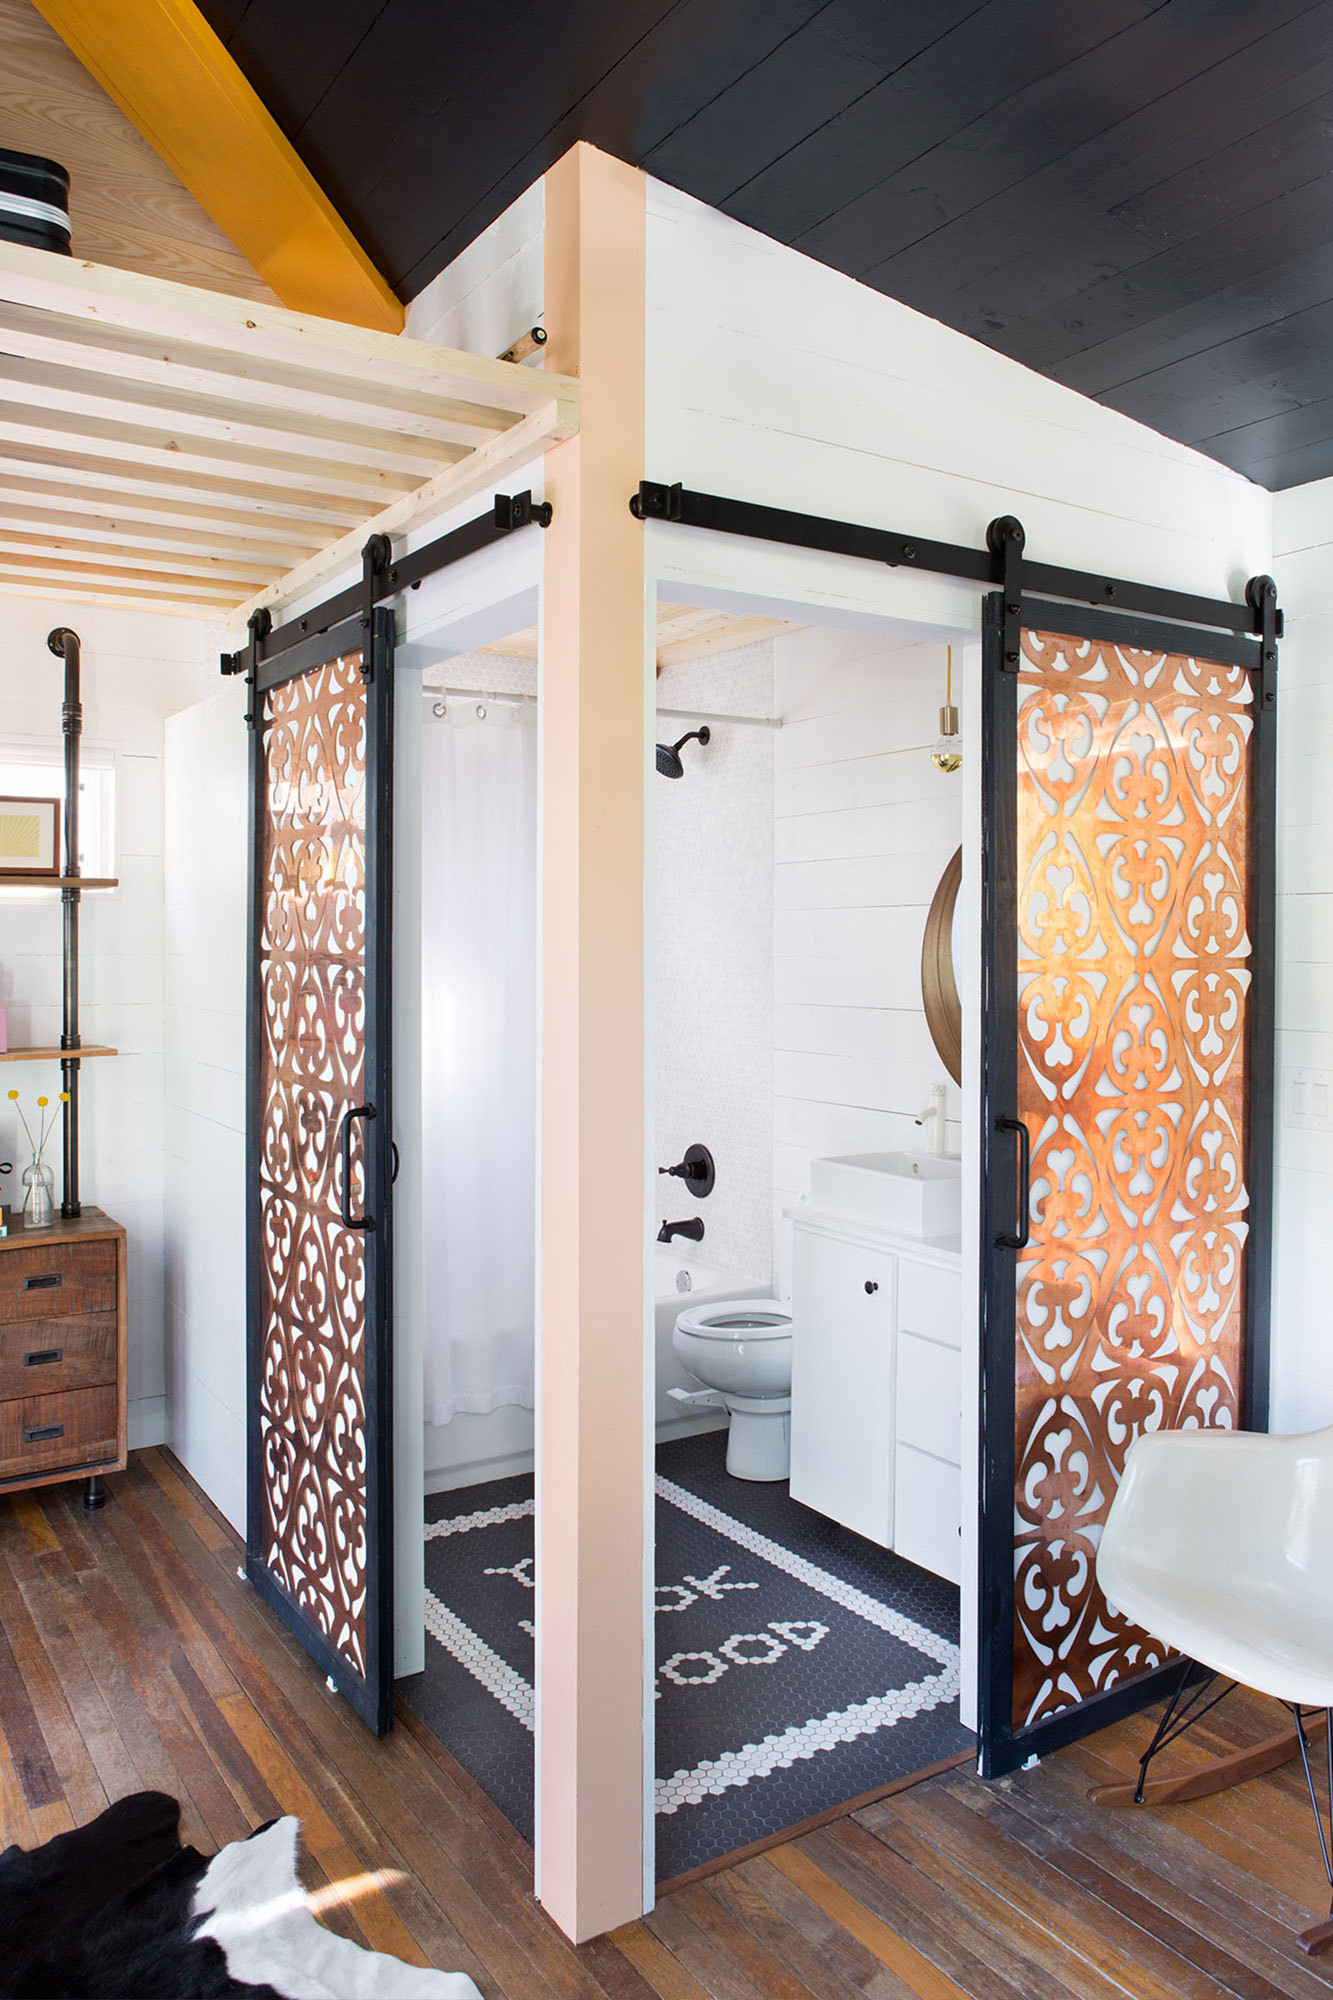 Barn-door track acts as a space saver in place of standard bathroom doors.